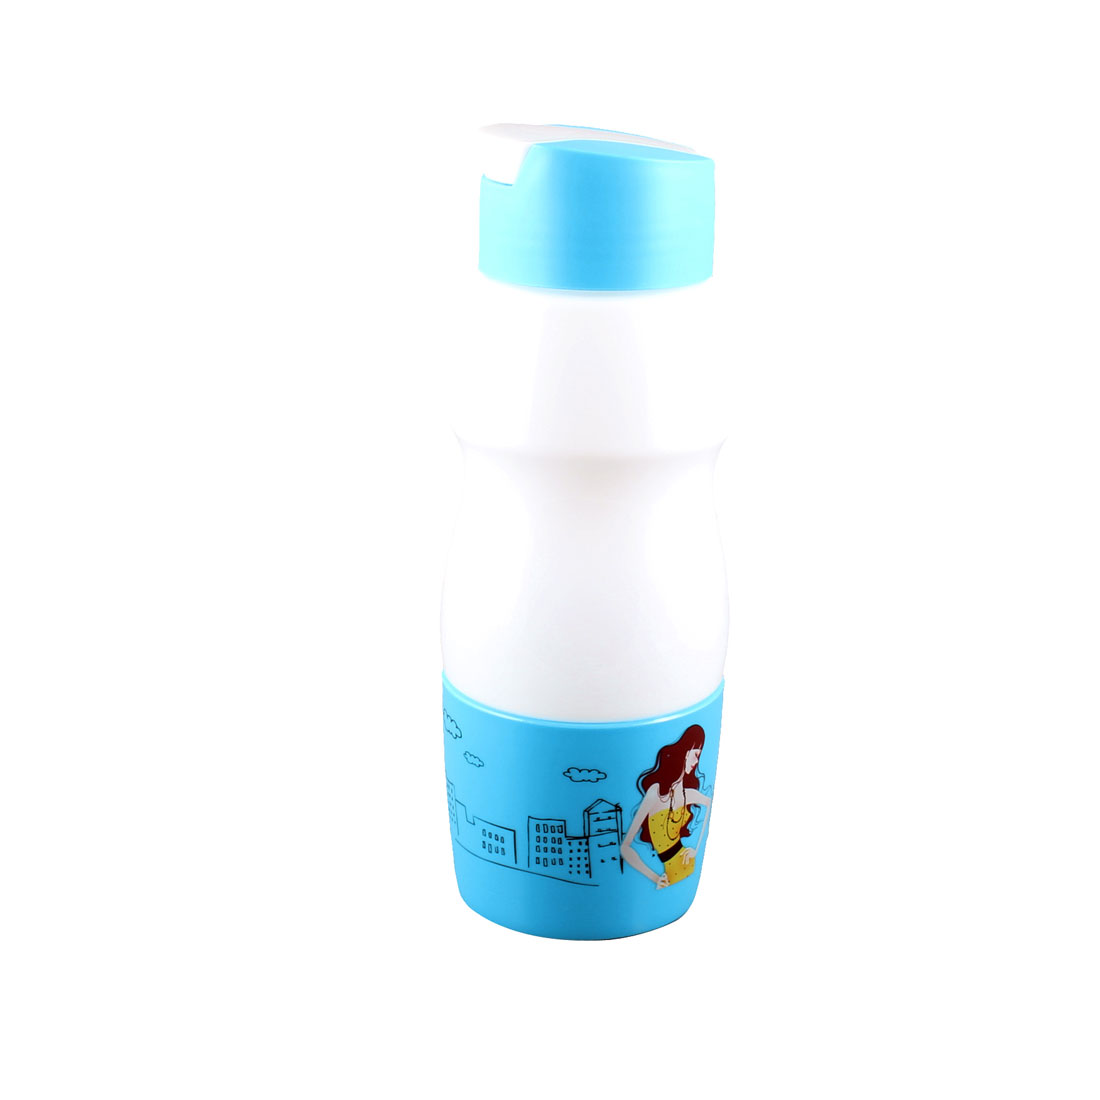 700ML Cartoon Pattern Sky Blue White Plastic Drinking Drink Water Bottle Cup Mug